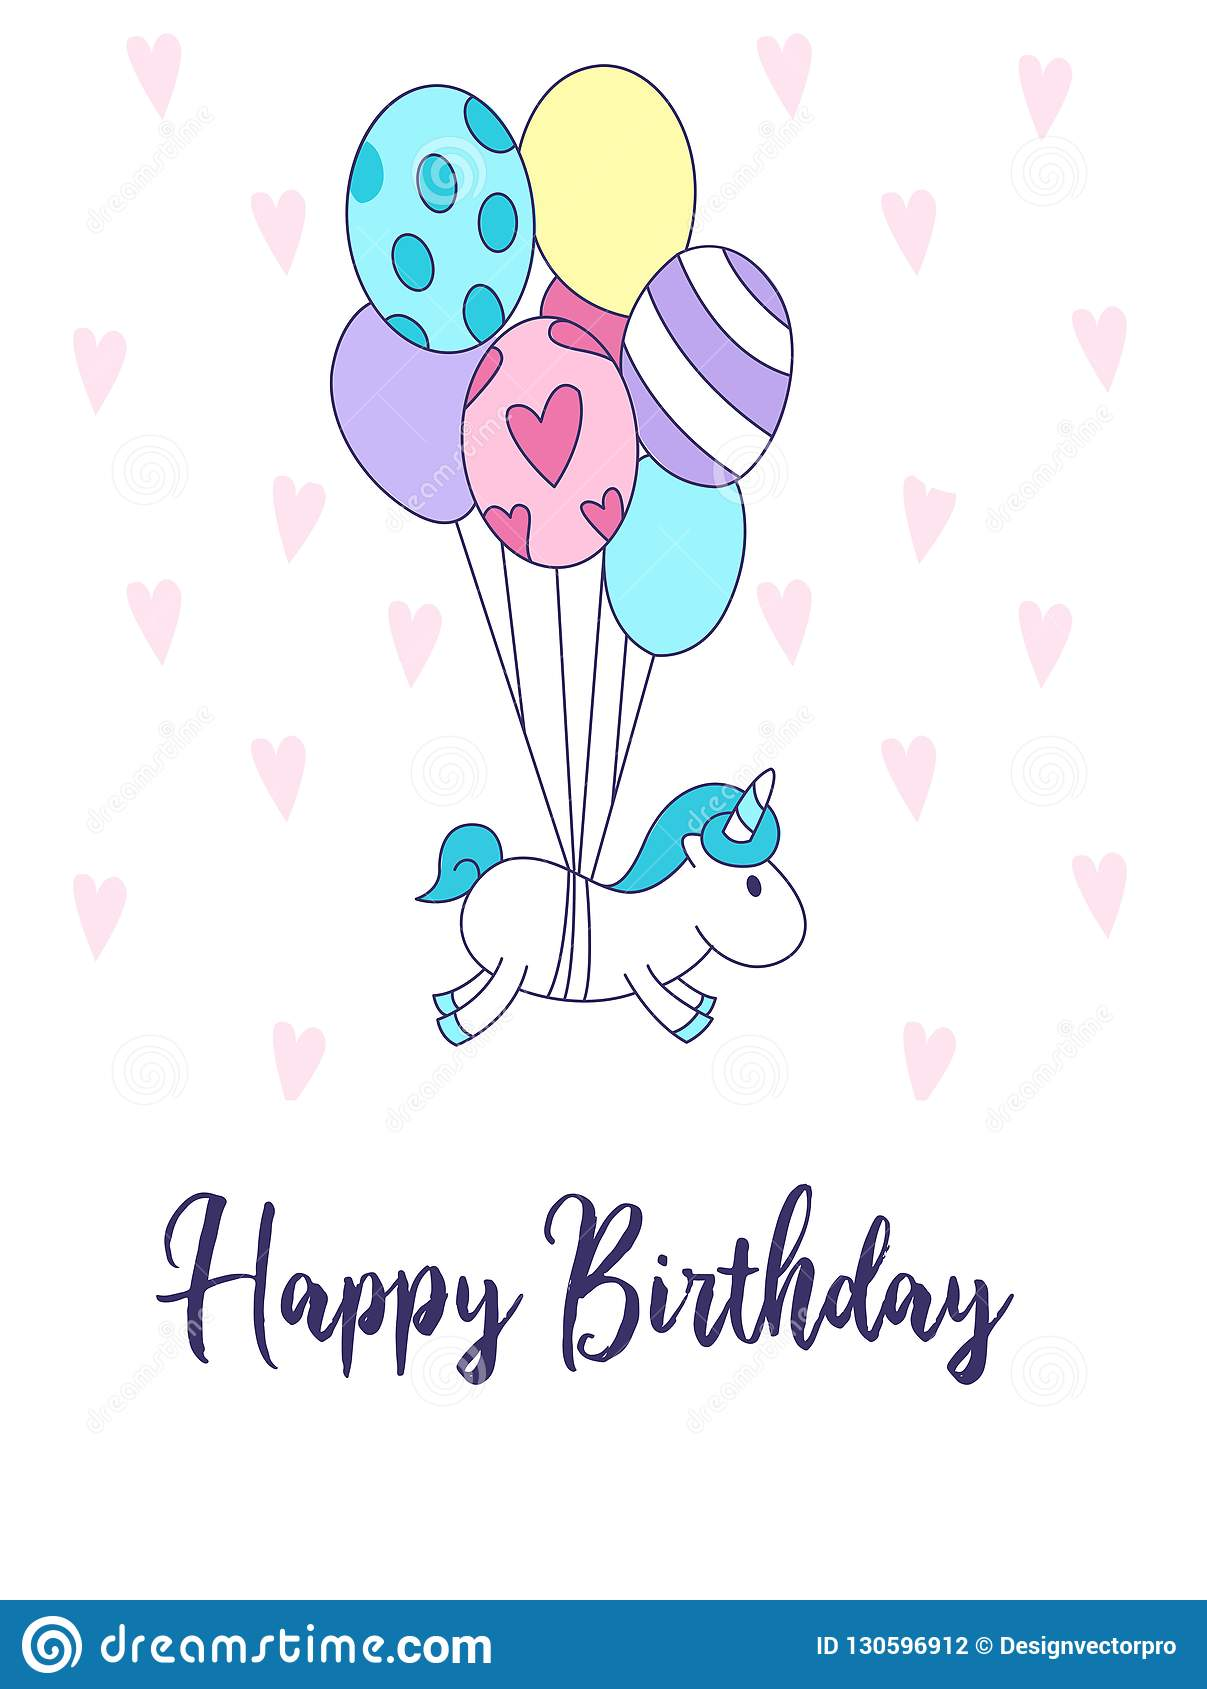 Happy Birthday Greeting Card With Unicorn And Cute Balloons Vector Illustration